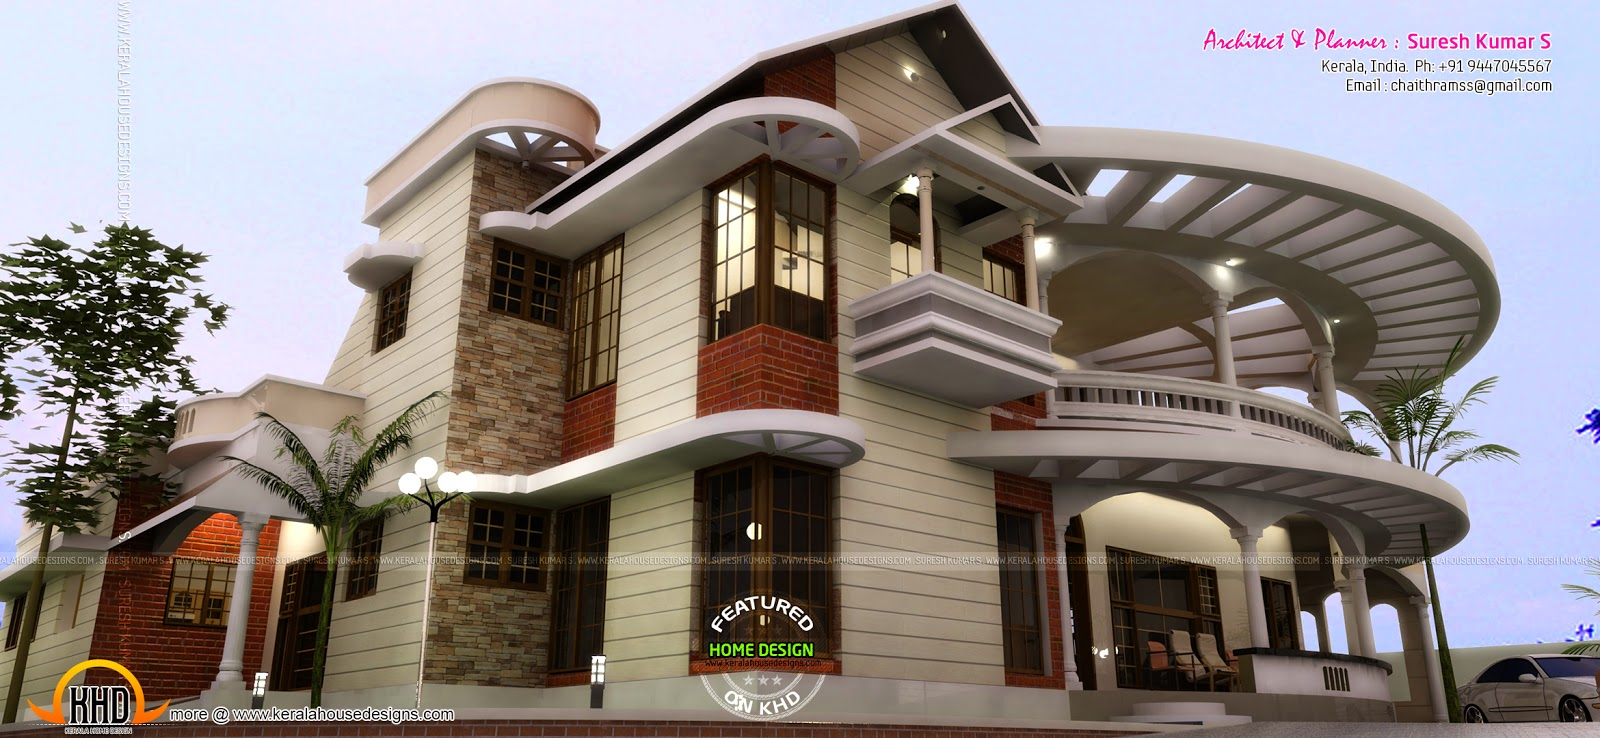 Great looking house design by Suresh Kumar